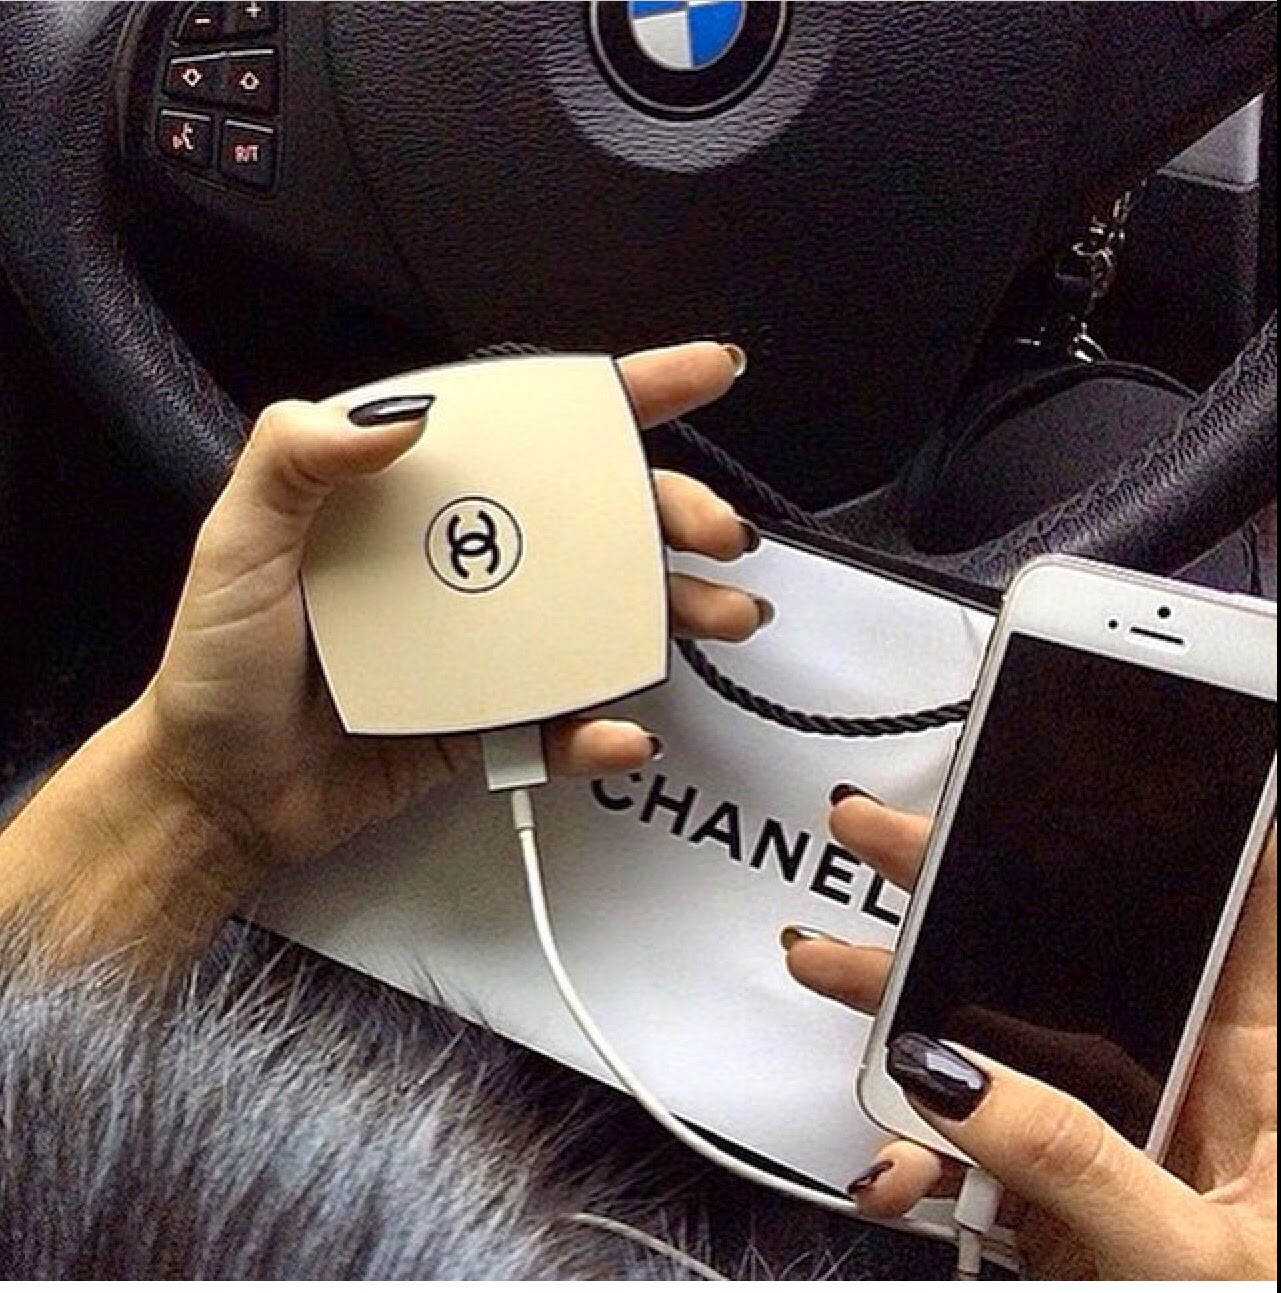 Chanel Phone Case Iphone 7